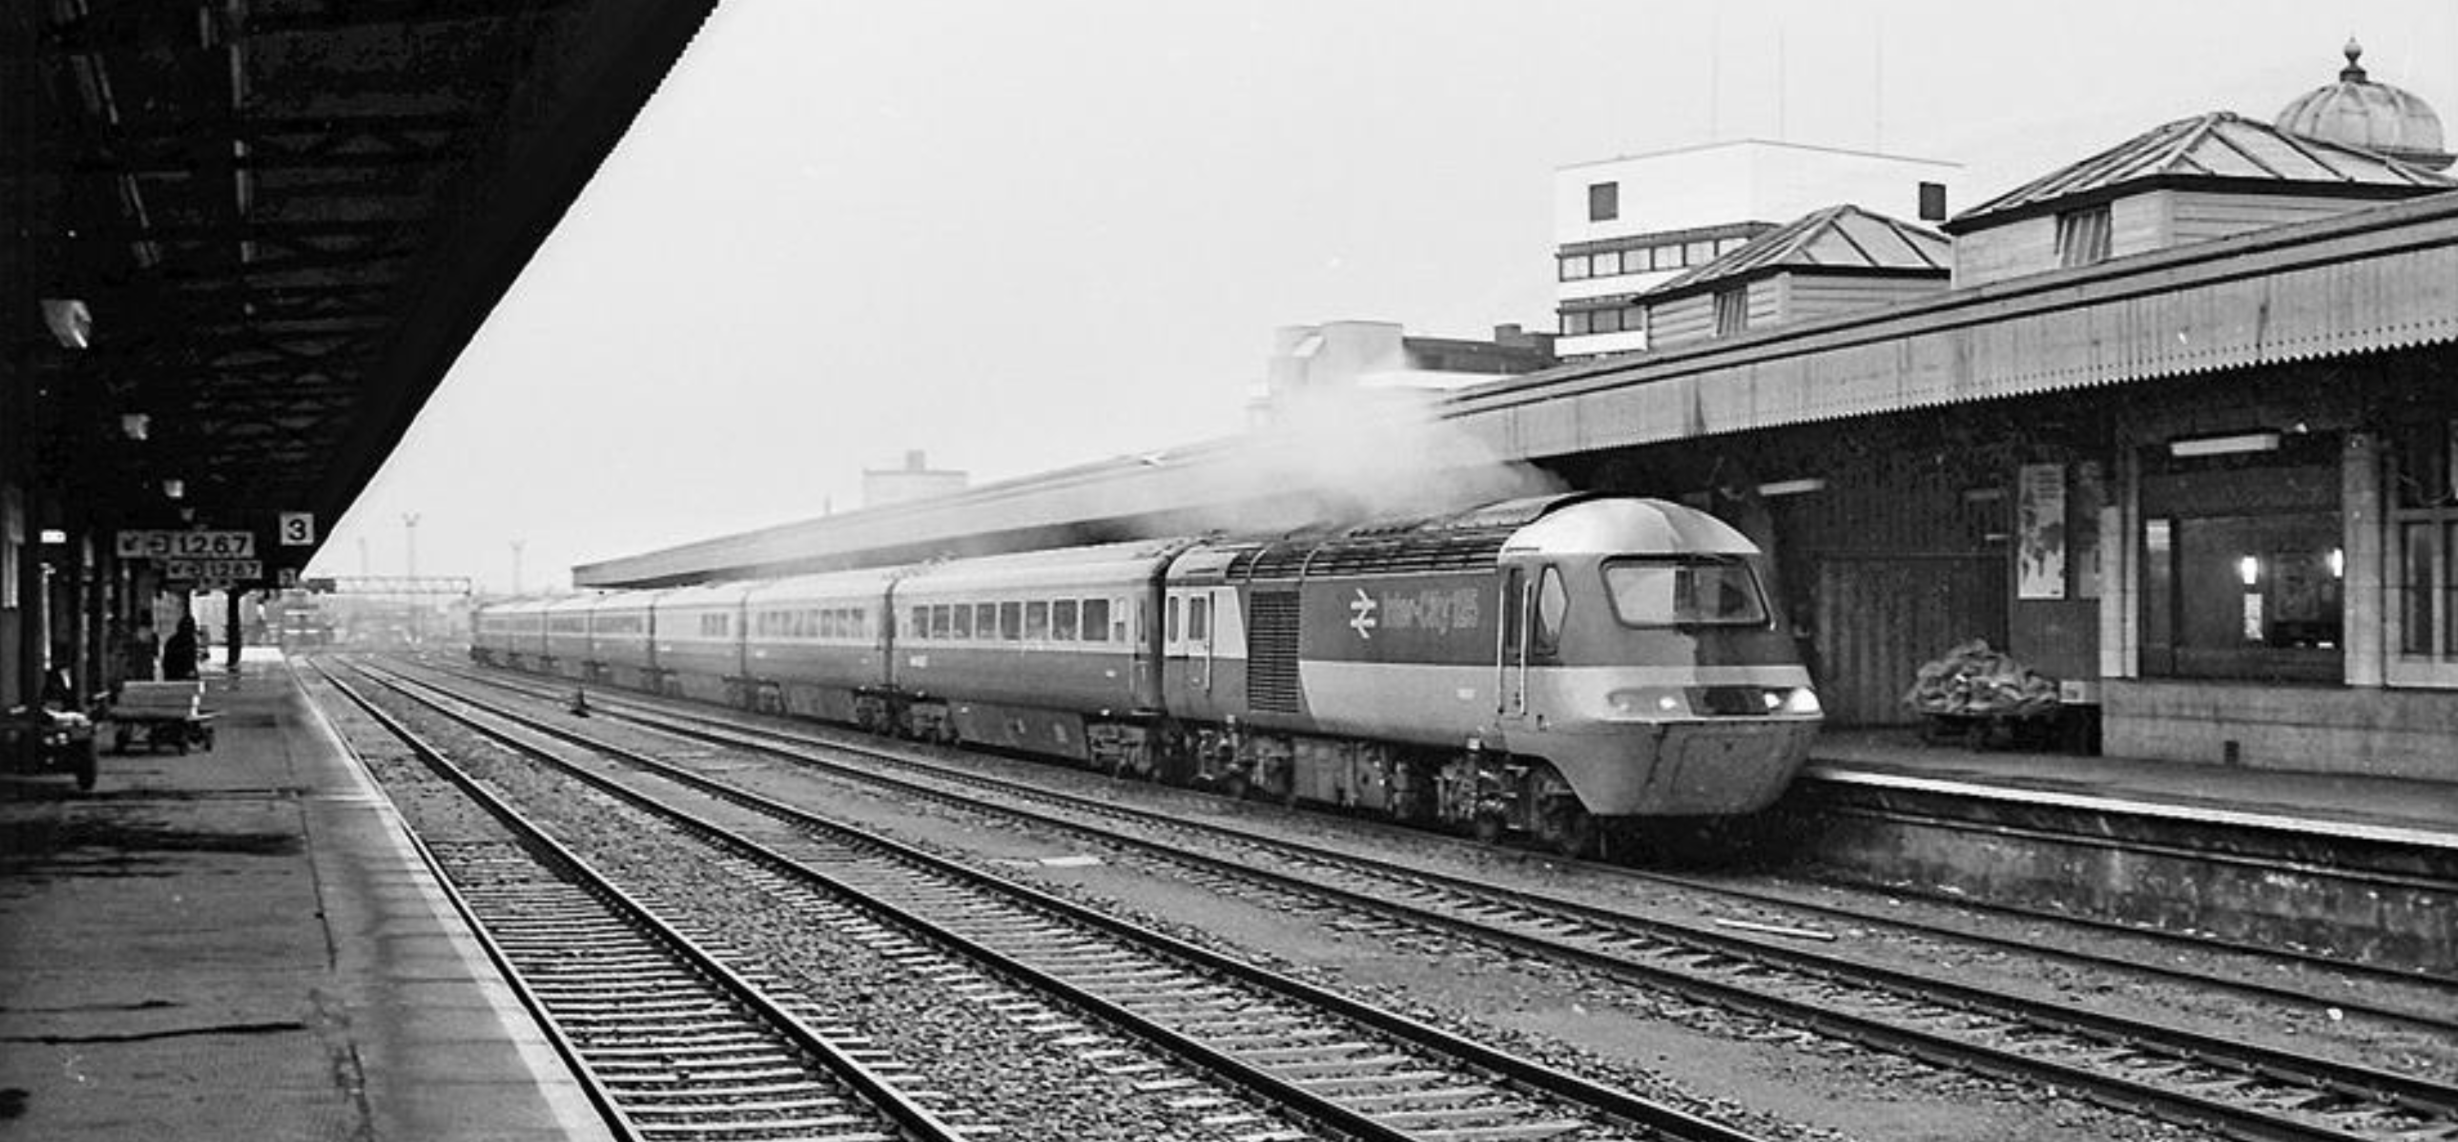 It's strange to think that these once ubiquitous mainline greyhounds are now becoming a thing of the past. Long-lived and staggeringly successful, the 125s carried us everywhere [almost!] for decades, but their iconic design is destined now to become just a memory.    Here, on a wet, windy Wednesday in late January 1980, HST W43121 leads, pulling into platform 2 of Cardiff Central with a Paddington service. The clagg from the Valenta engines indicates that this set has just come up the road from Canton.    Photograph by Robert Masterman and used with many thanks.